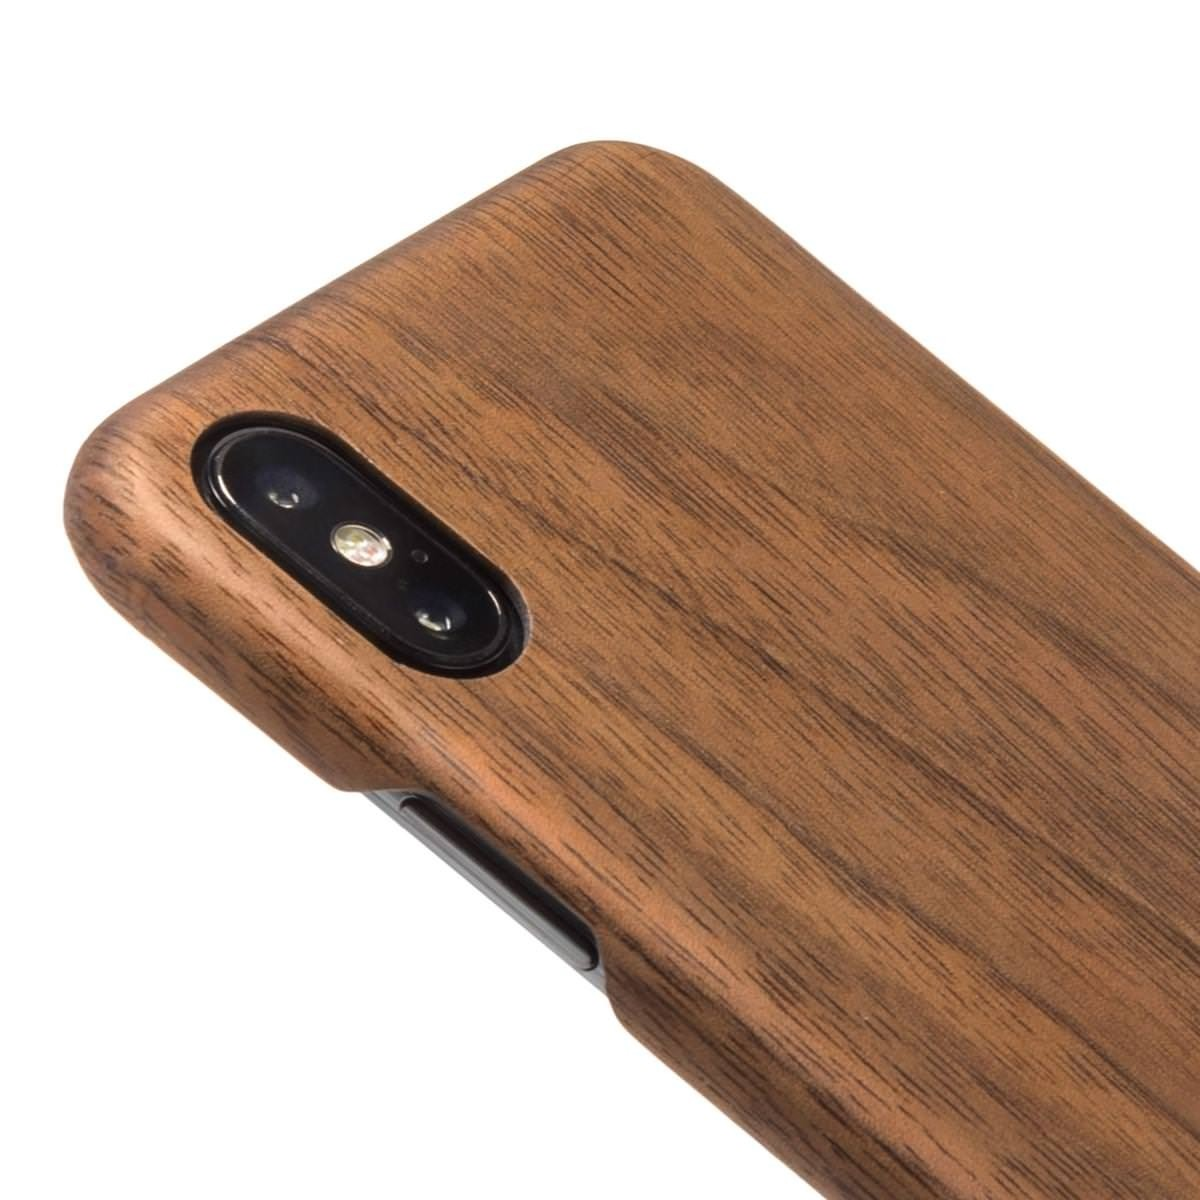 **DISCONTINUED** Woodcessories EcoCase Slim for iPhone X/XS - Walnut, eco209